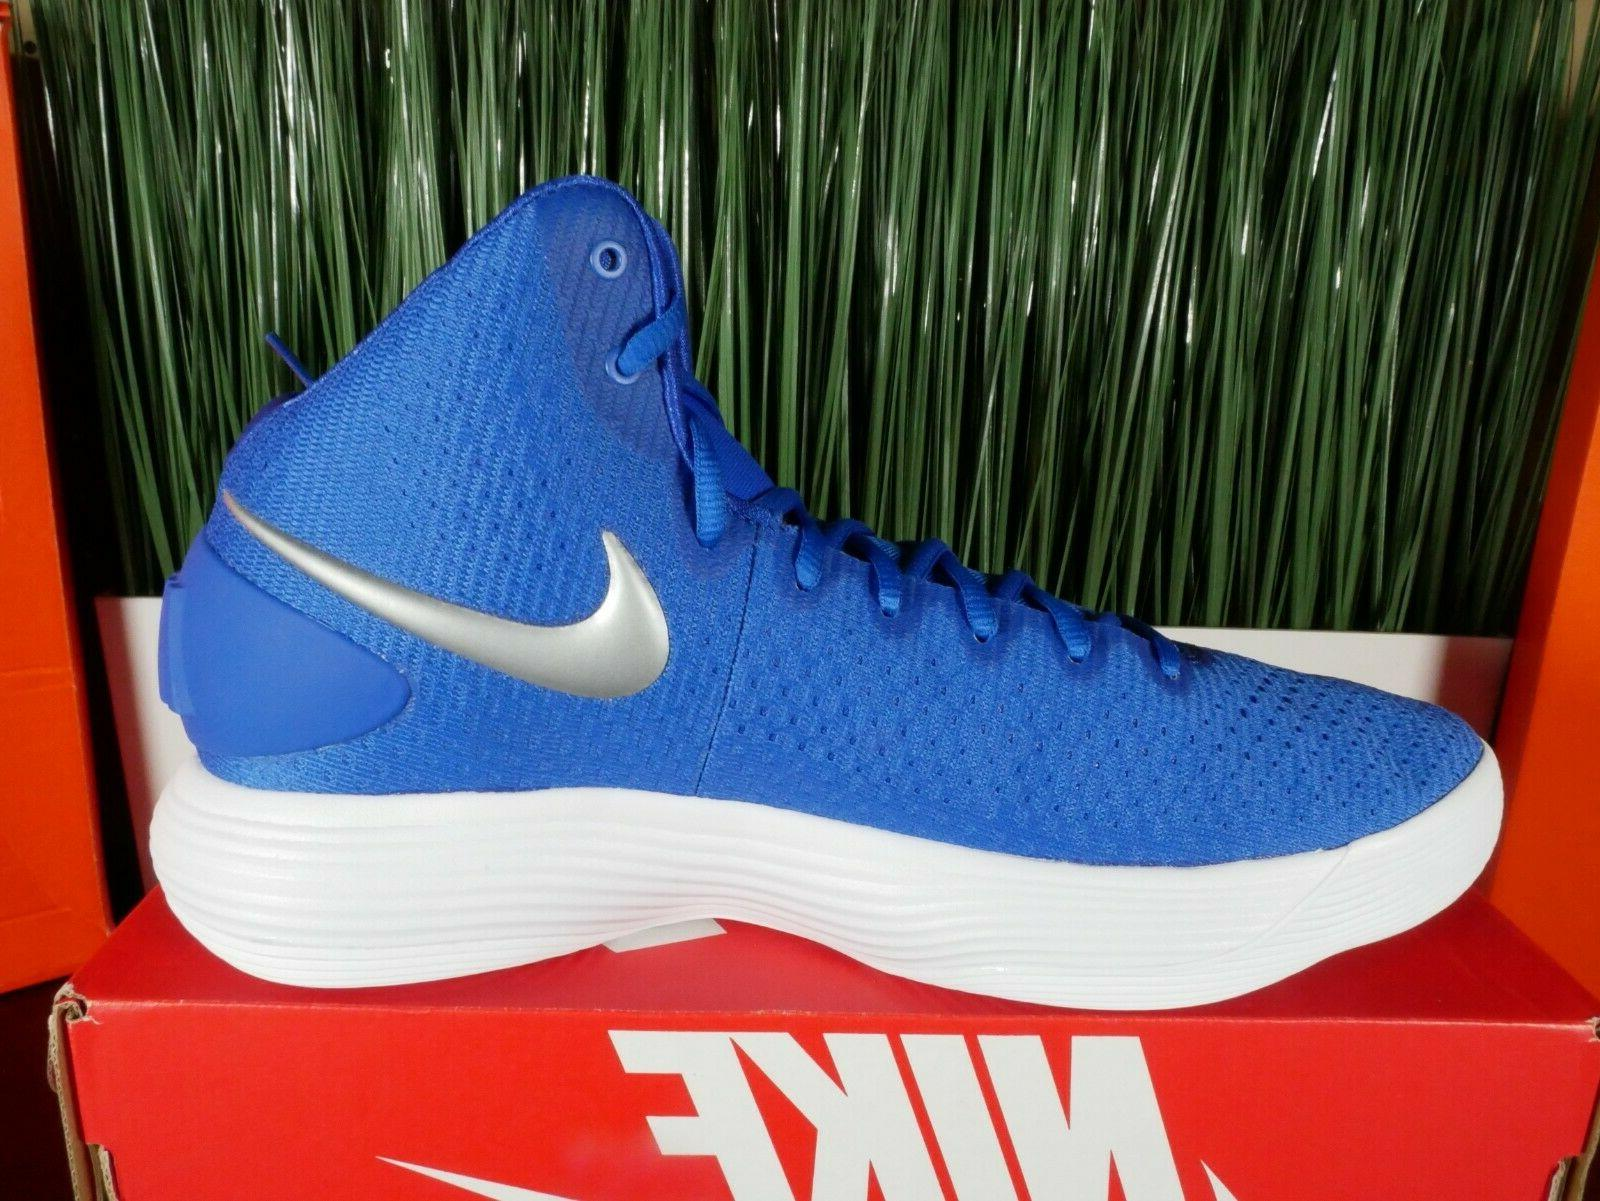 Nike Basketball Shoes Game Royal Blue Size